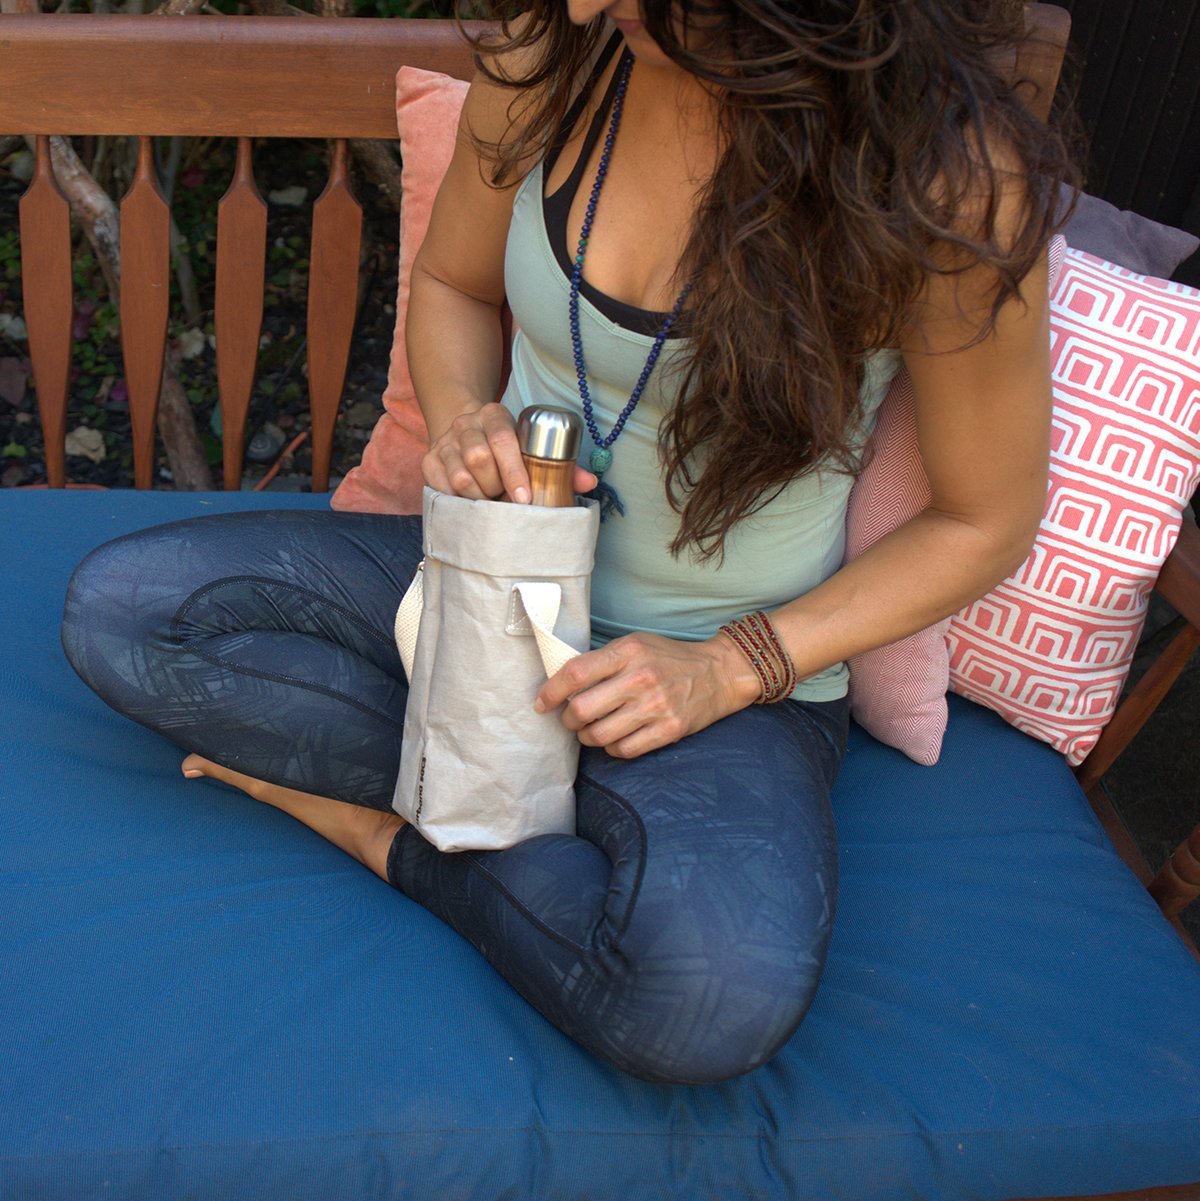 Urbana_Sacs_Handcrafted_Washable_Paper_Water_Wine_Carry_Bags_600x@2x.jpg